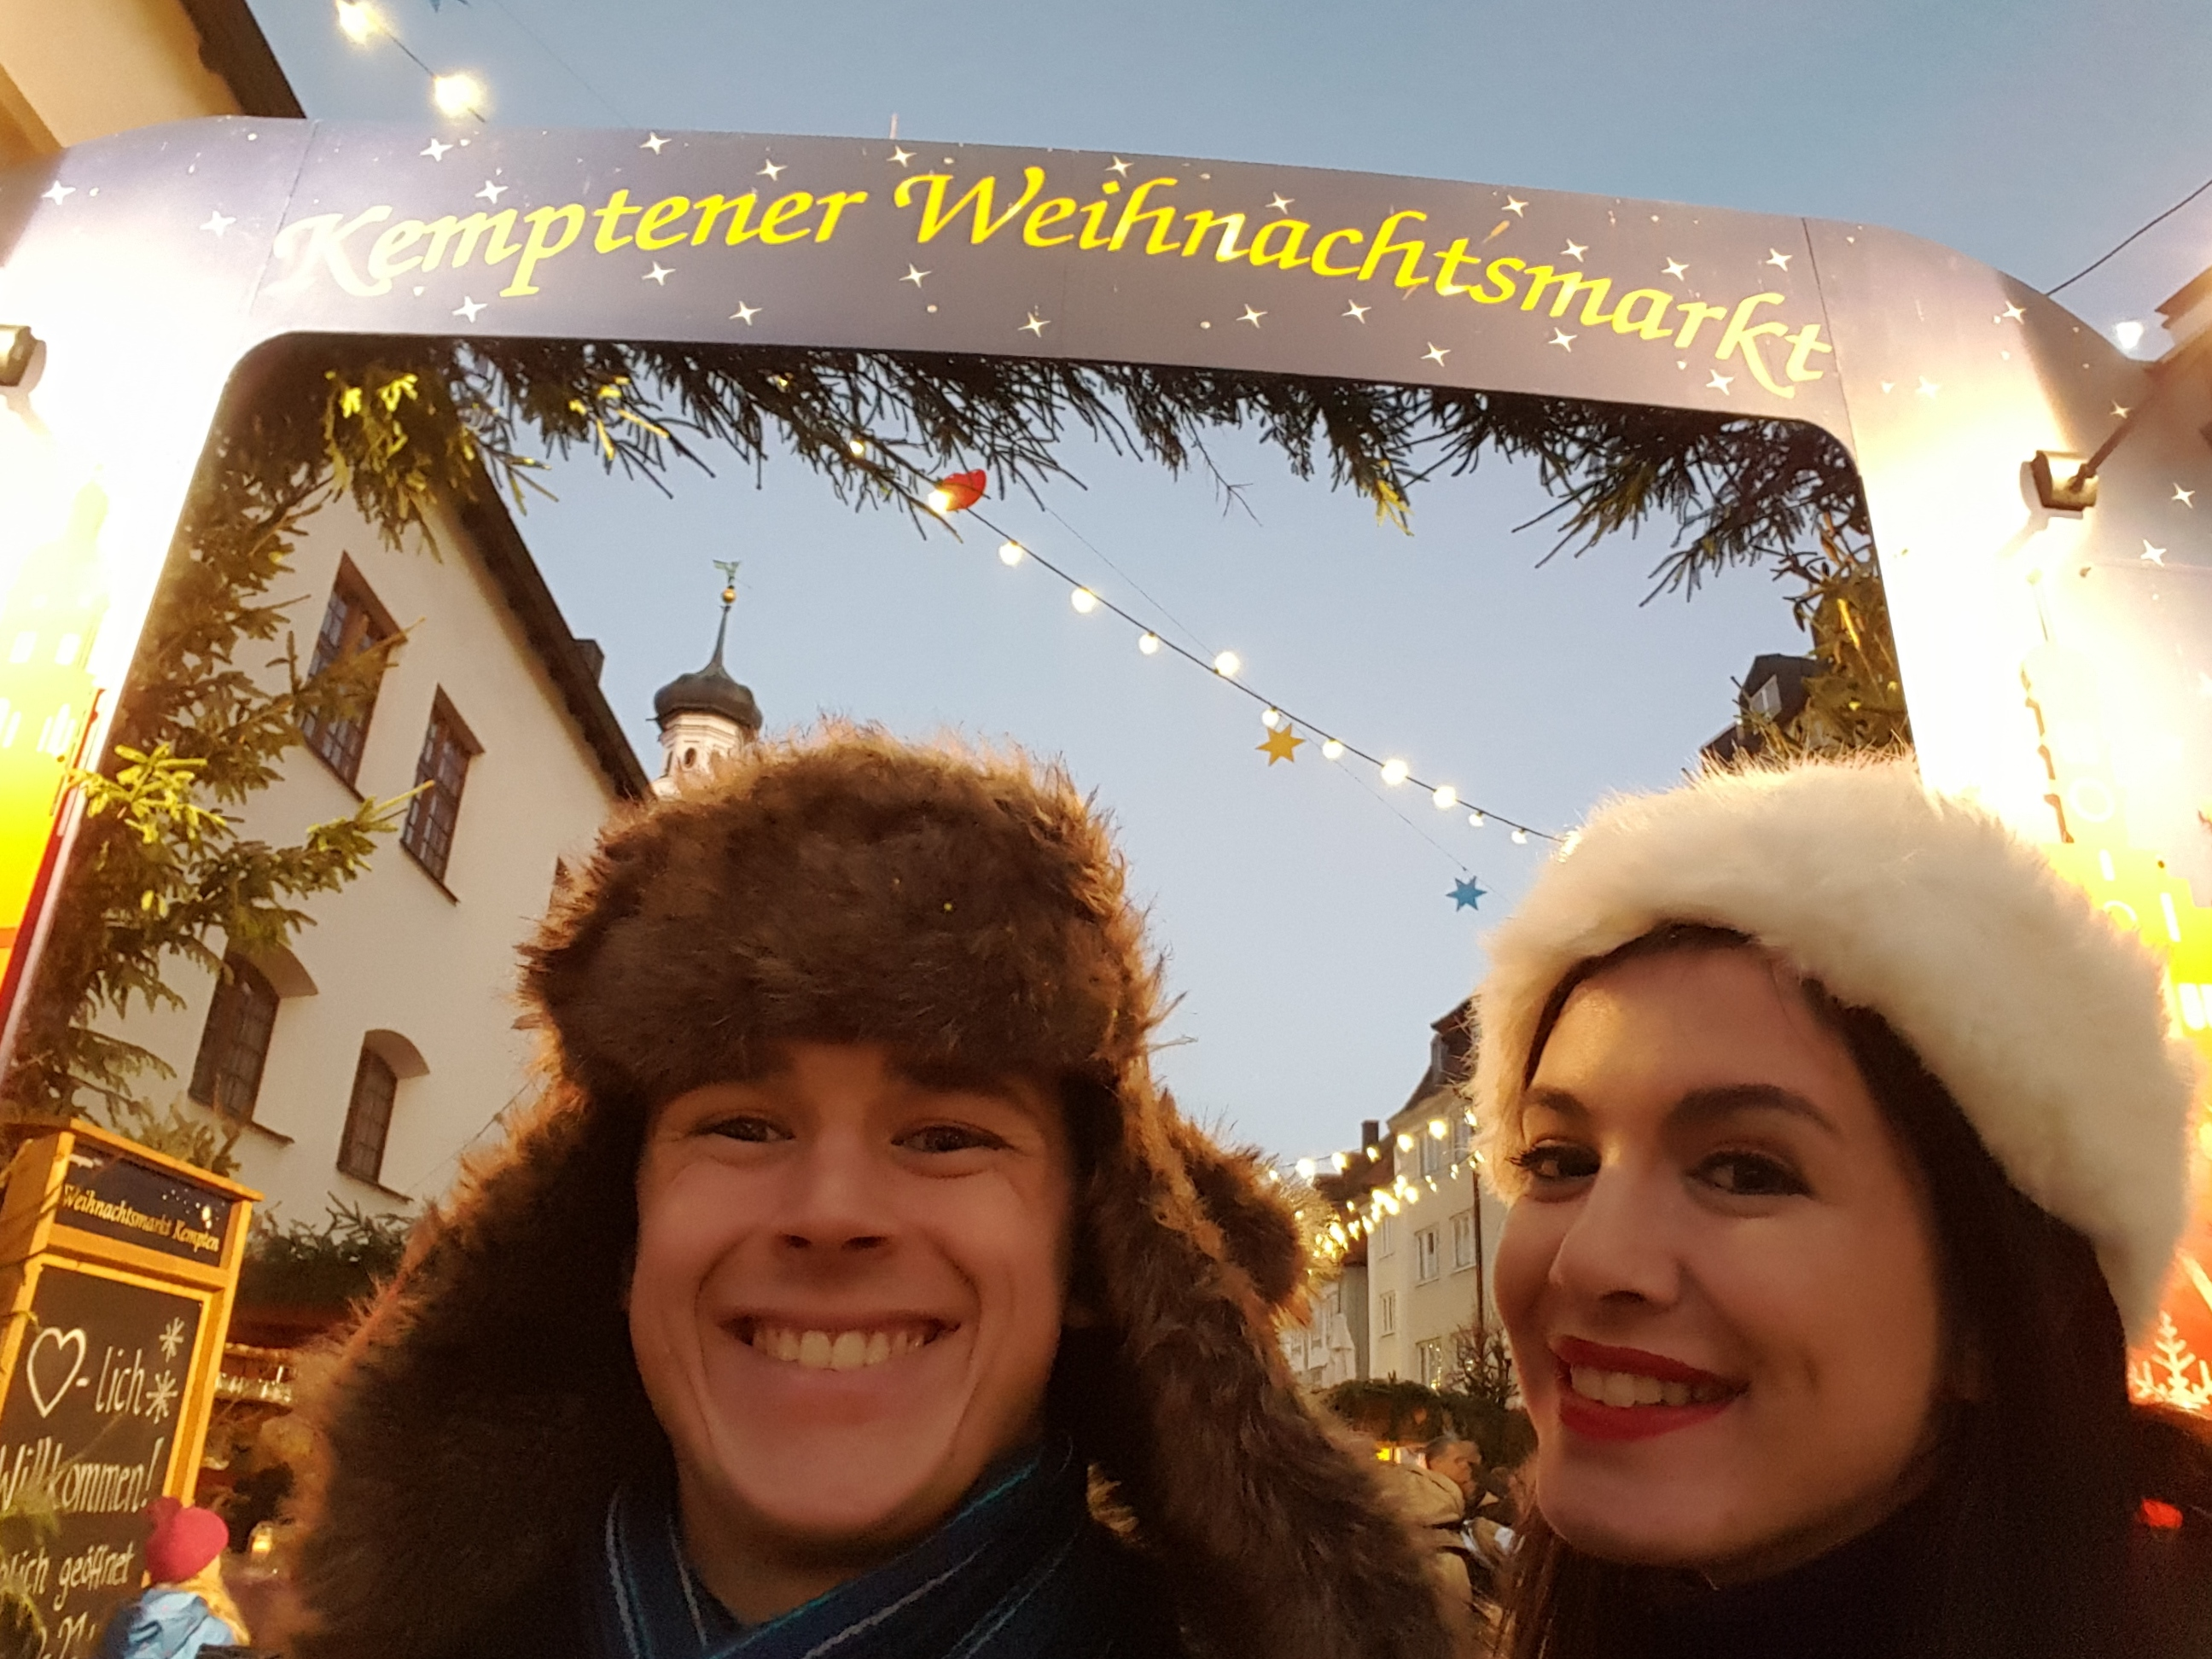 The Kempten Christmas Markets